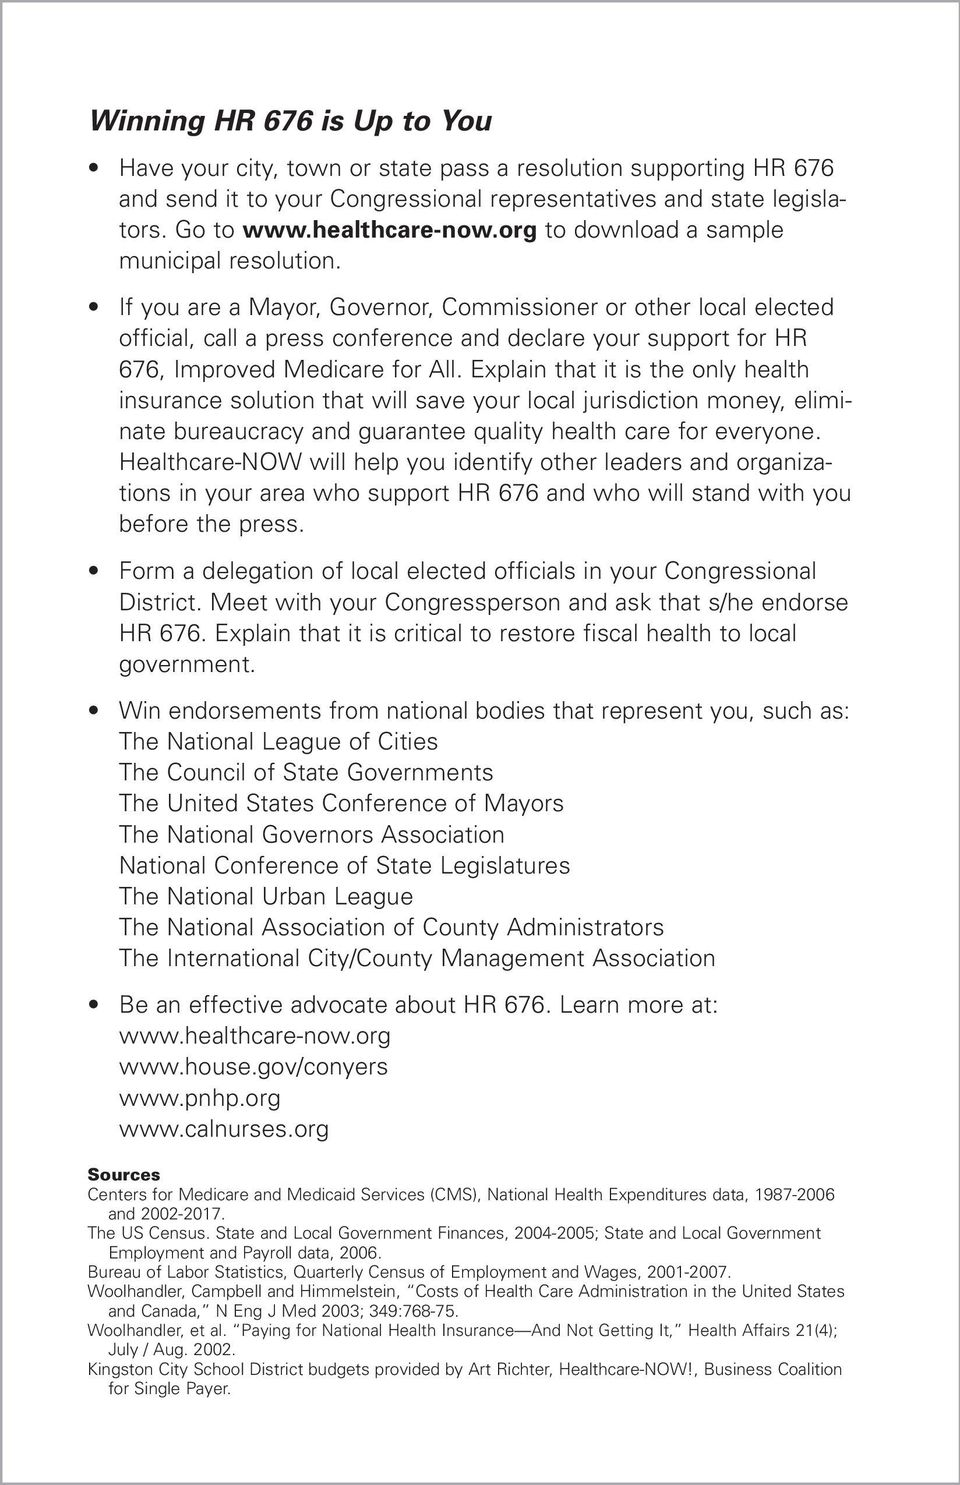 If you are a Mayor, Governor, Commissioner or other local elected official, call a press conference and declare your support for HR 676, Improved Medicare for All.